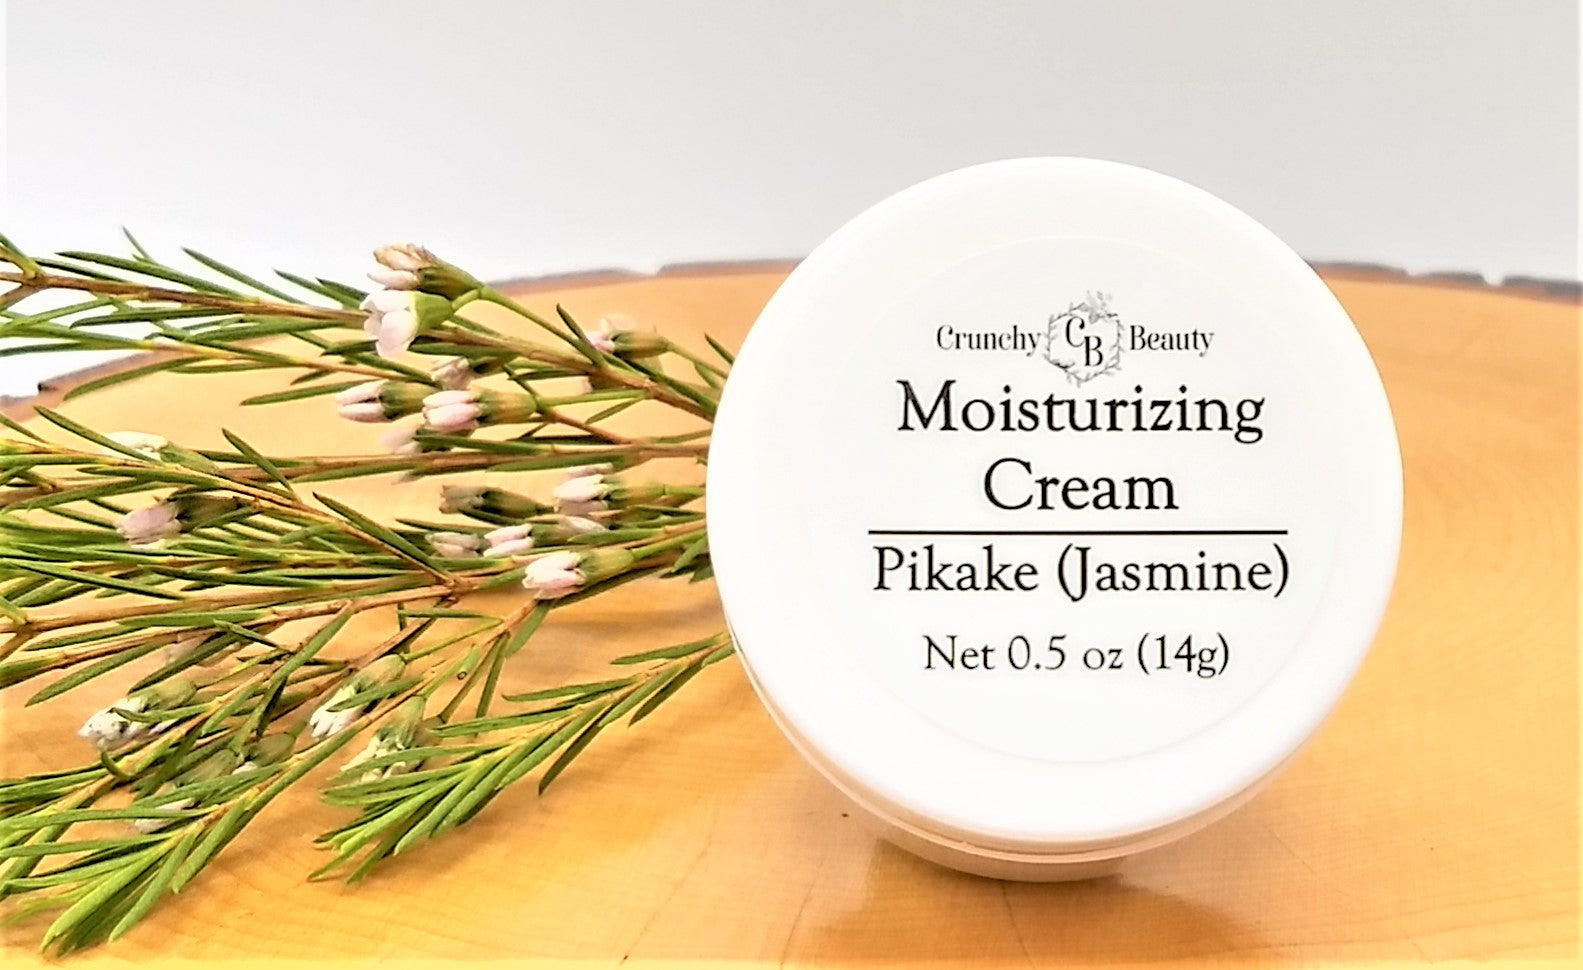 Moisturizing Cream - Pikake (Hawaiian Jasmine)